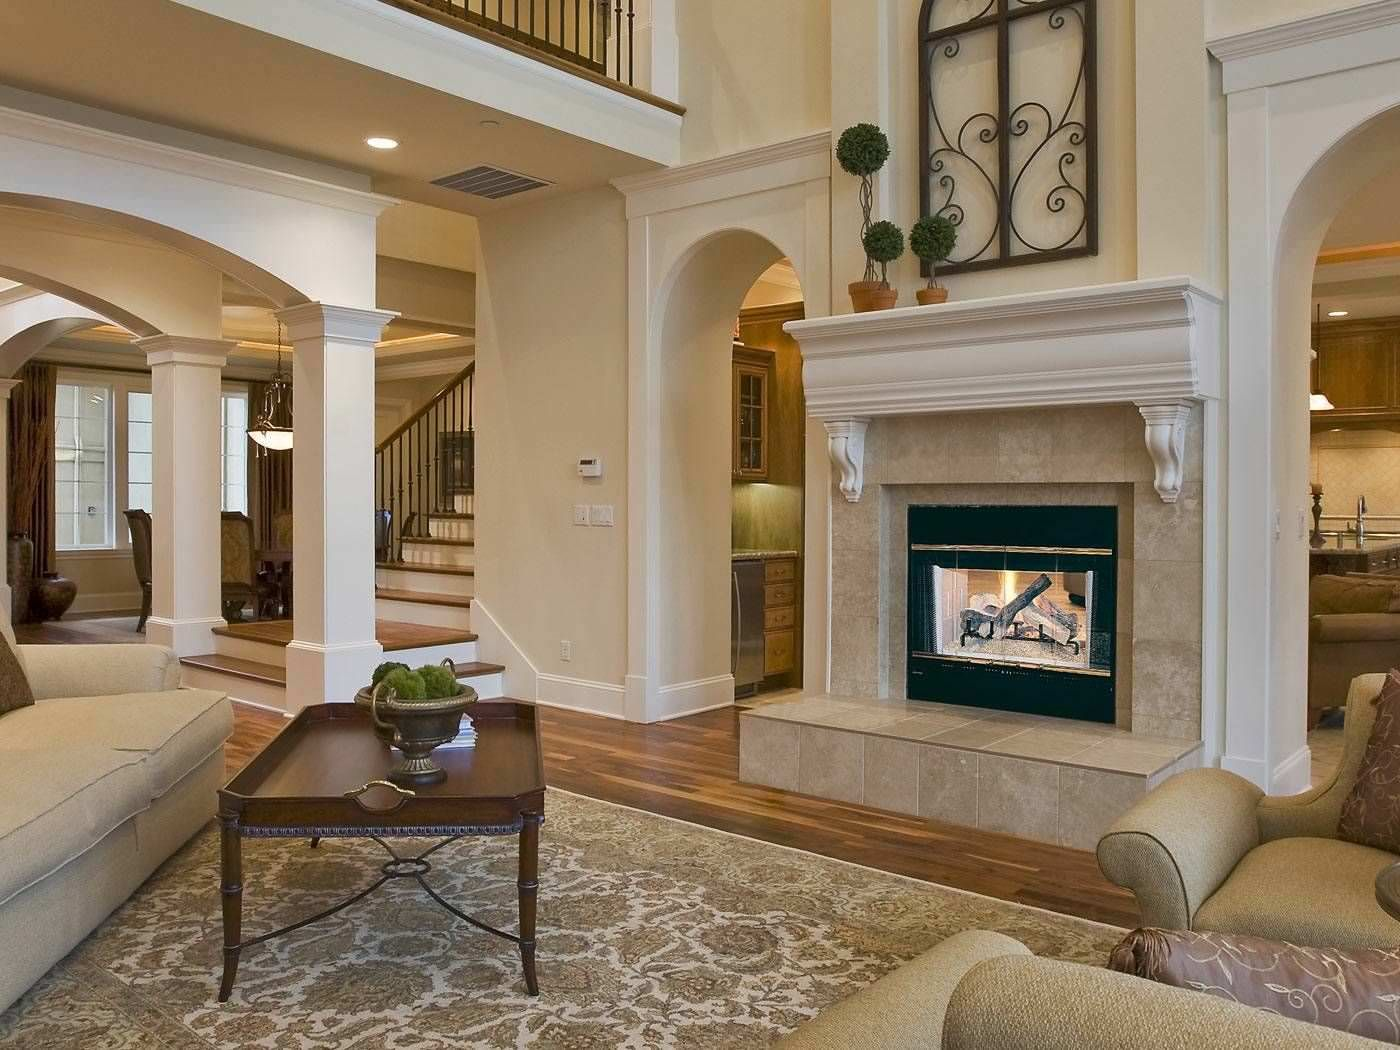 Wood Fireplace  Doublesided  Closed Hearth  Traditional Hst Amusing Design Ideas For Living Room With Fireplace Inspiration